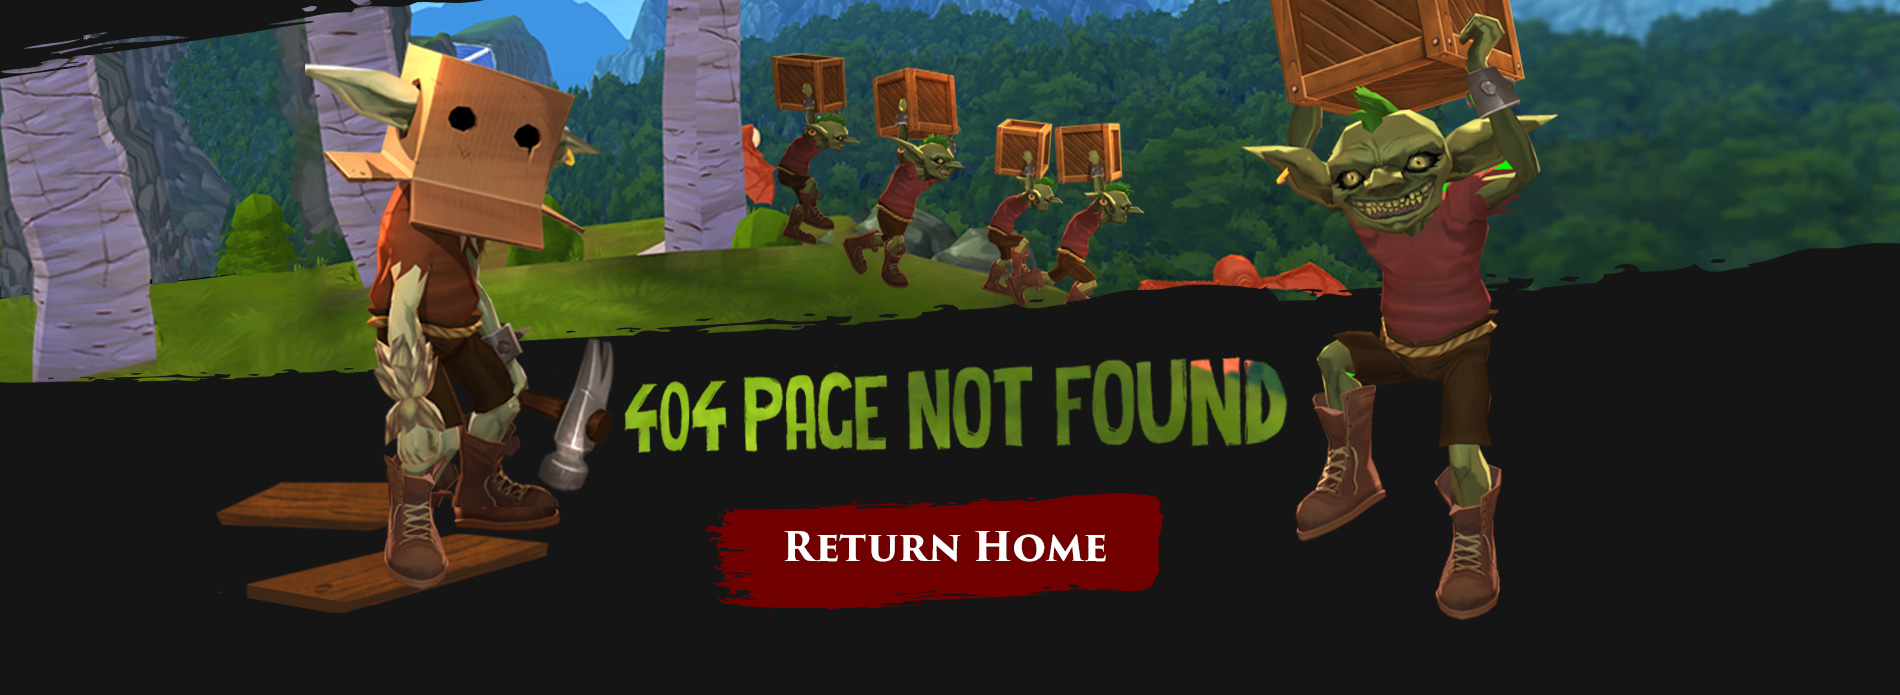 Return to Artix.com